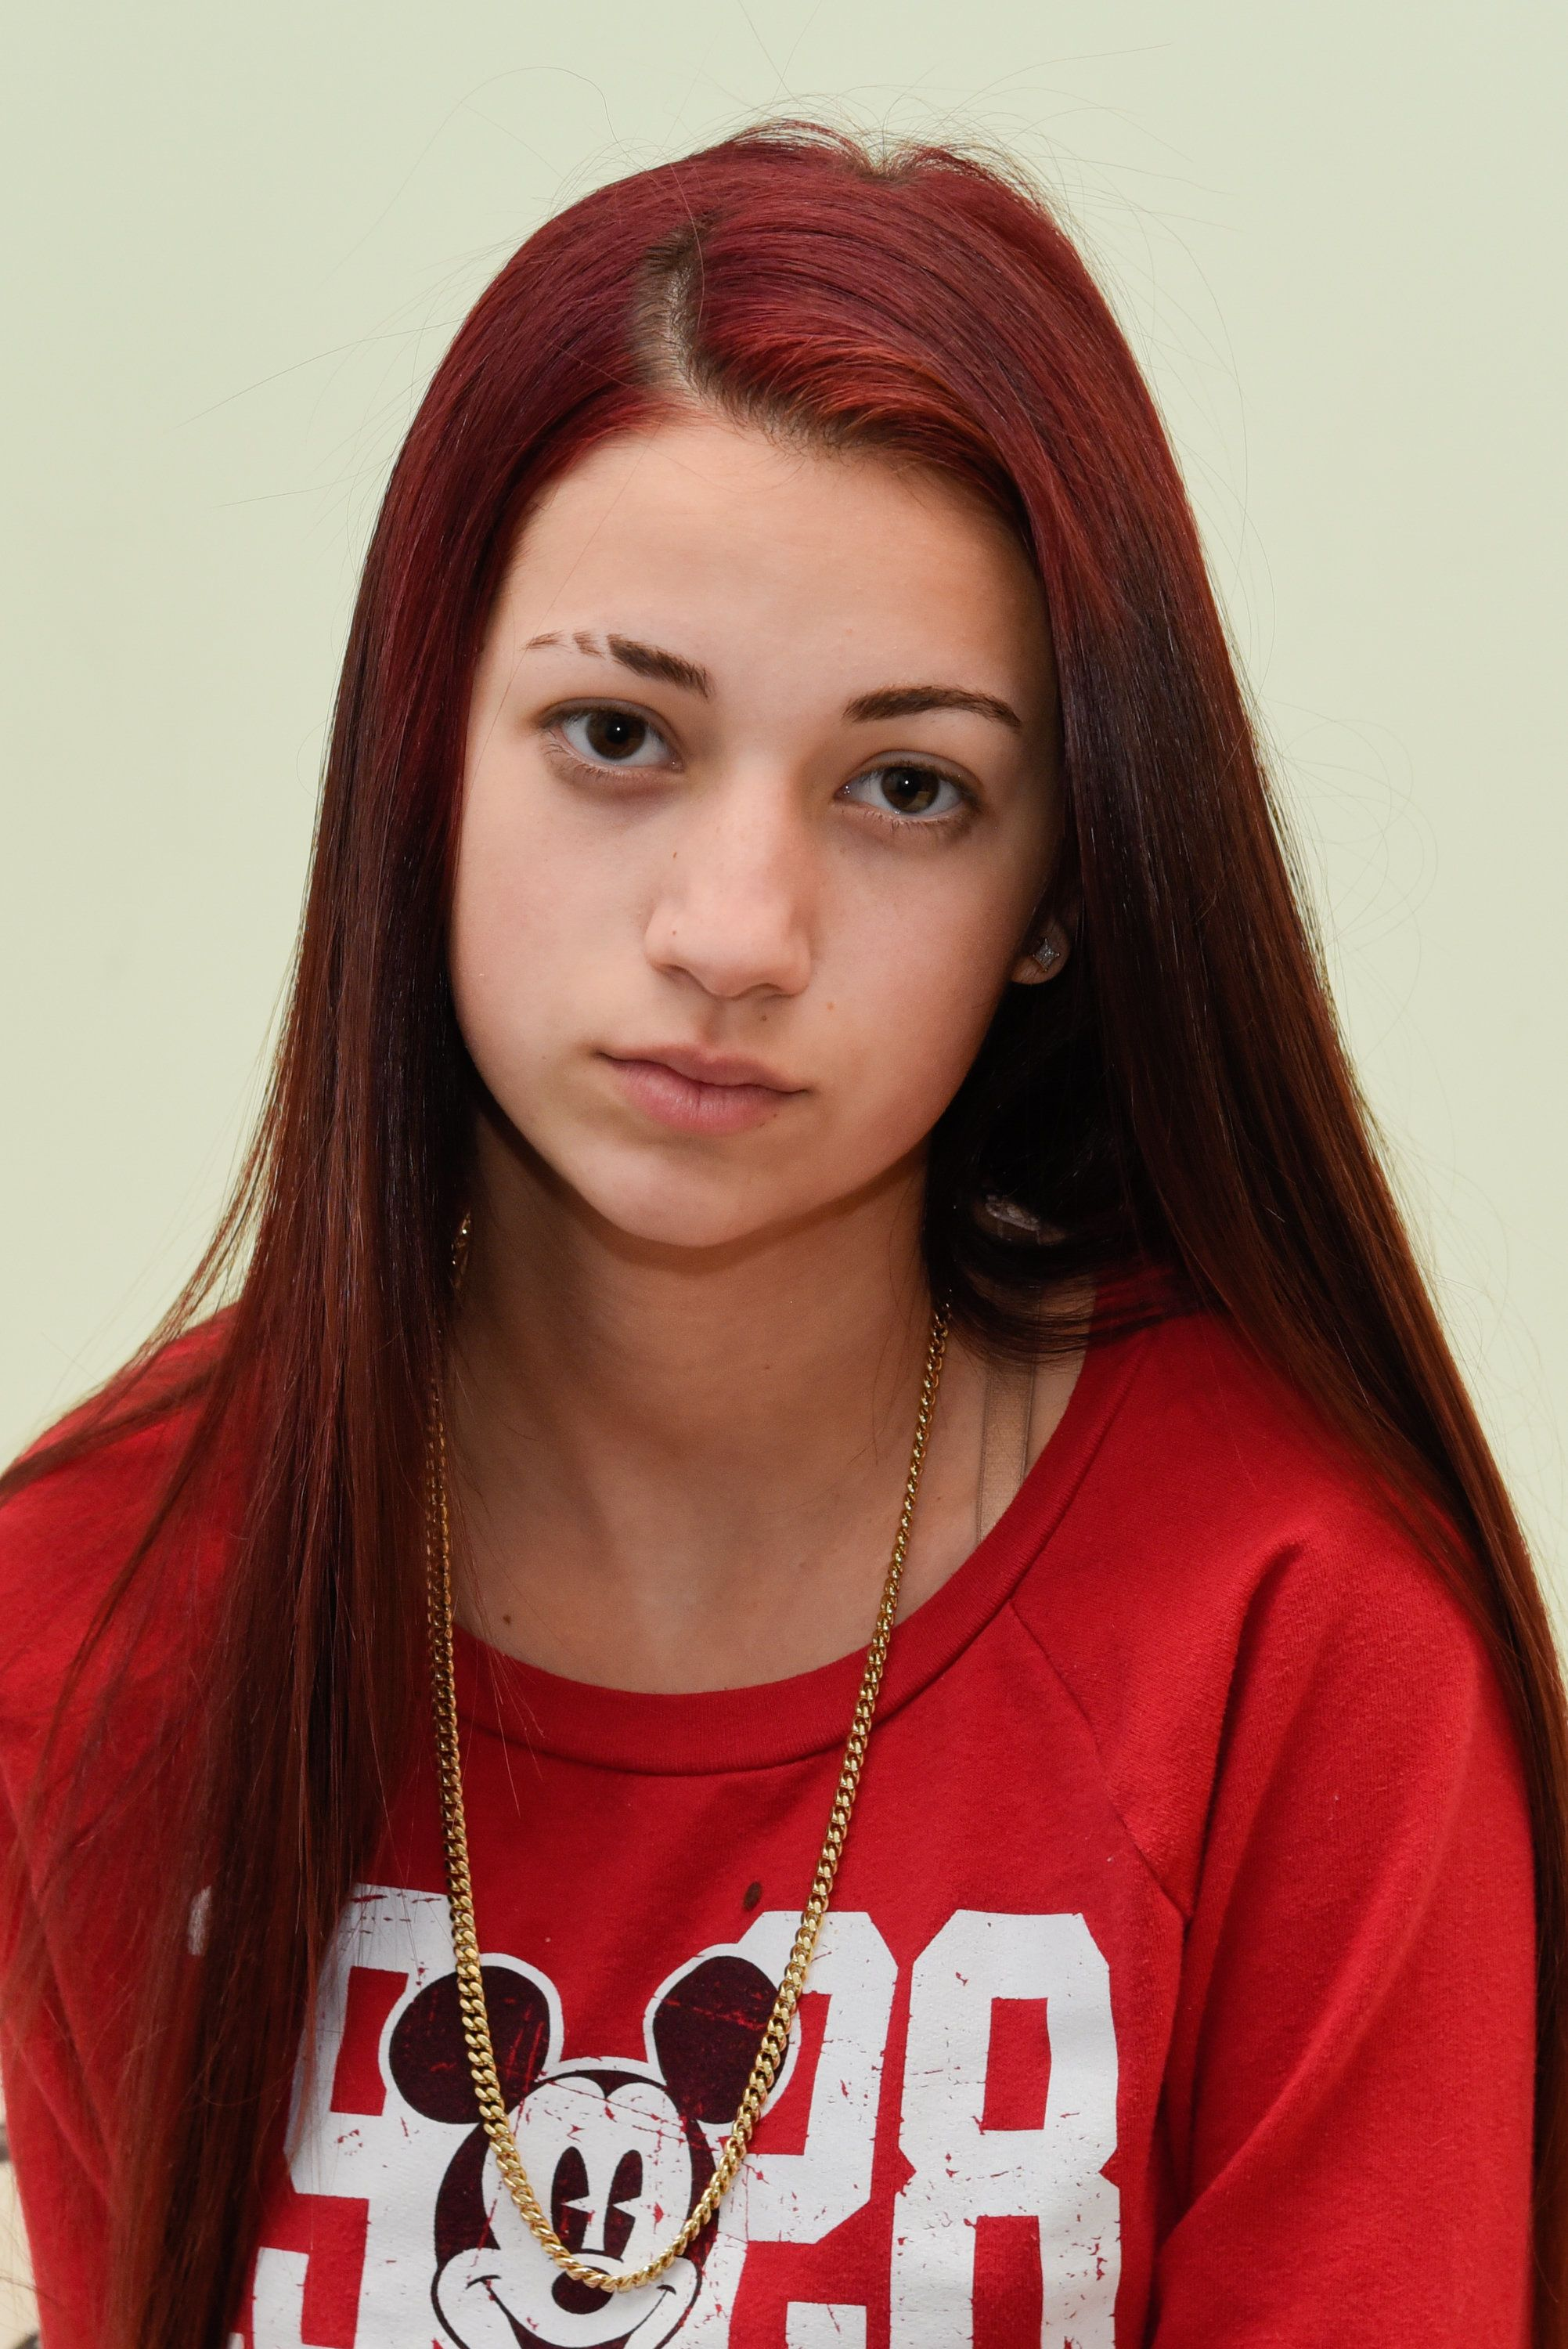 what the viral fame of the  u0026 39 cash me ousside u0026 39  girl says about us